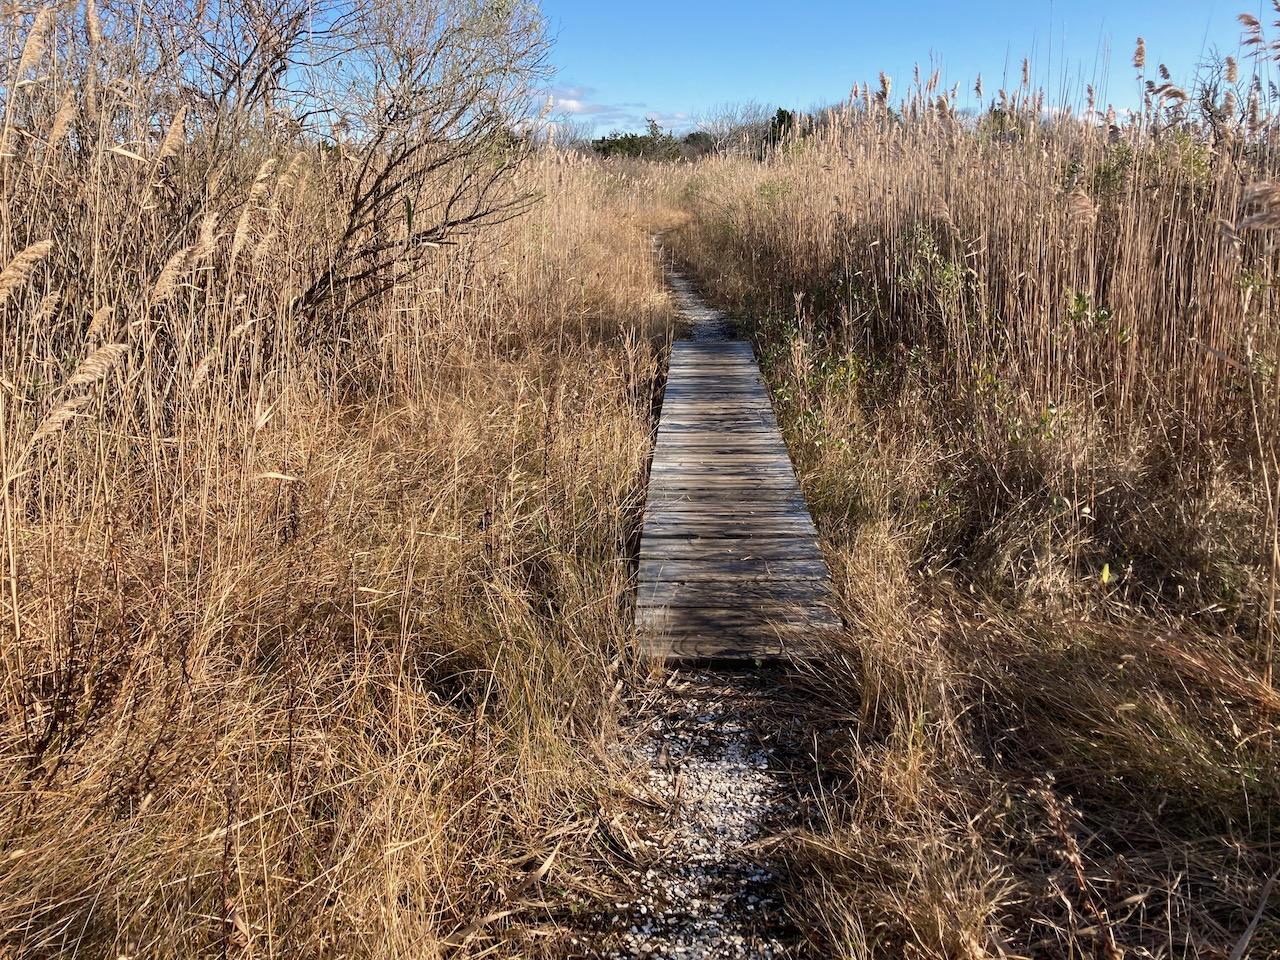 Trail and small boardwalk through marshes.